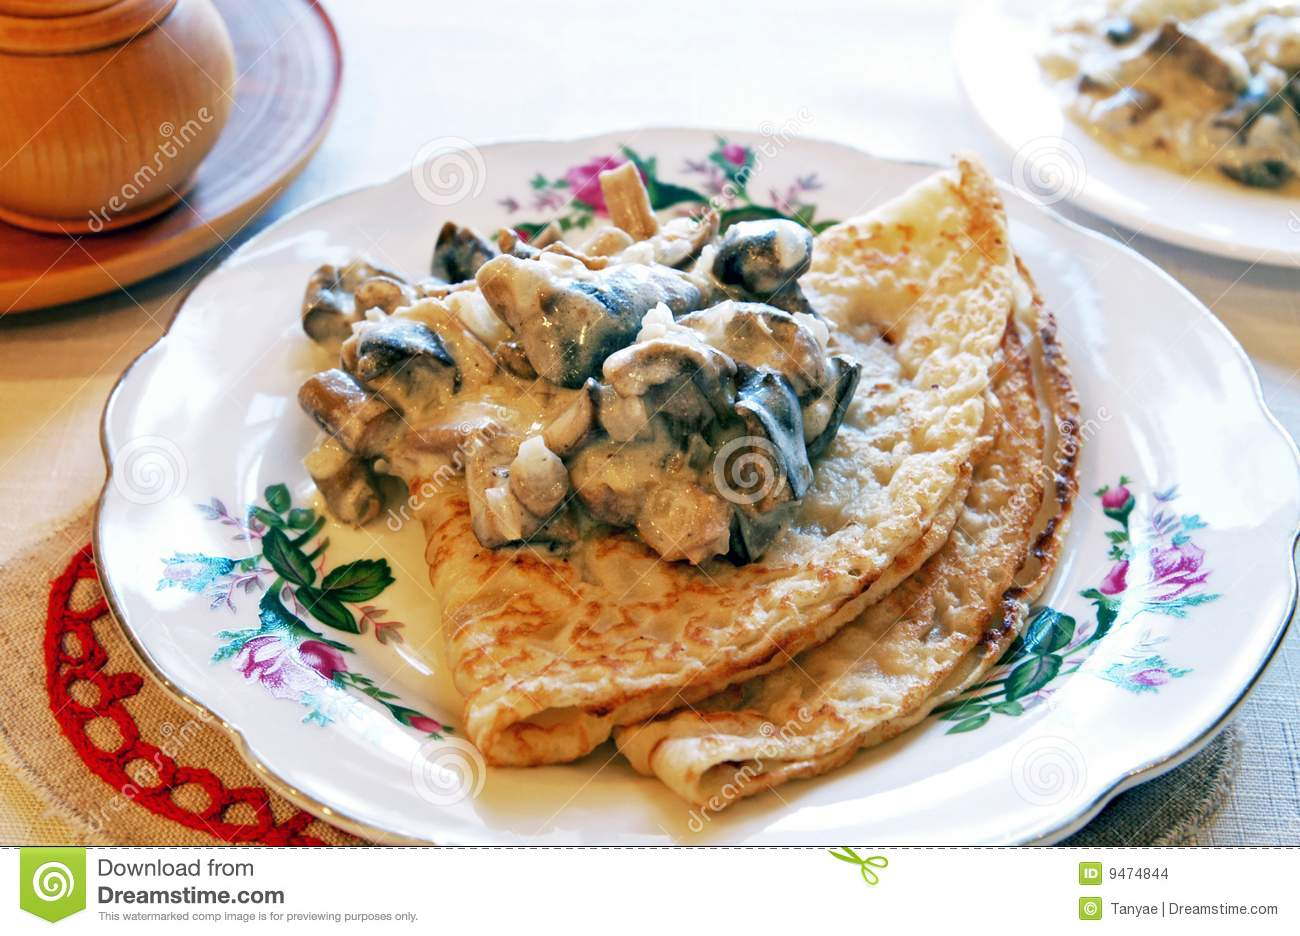 Blini with mushrooms in white sauce